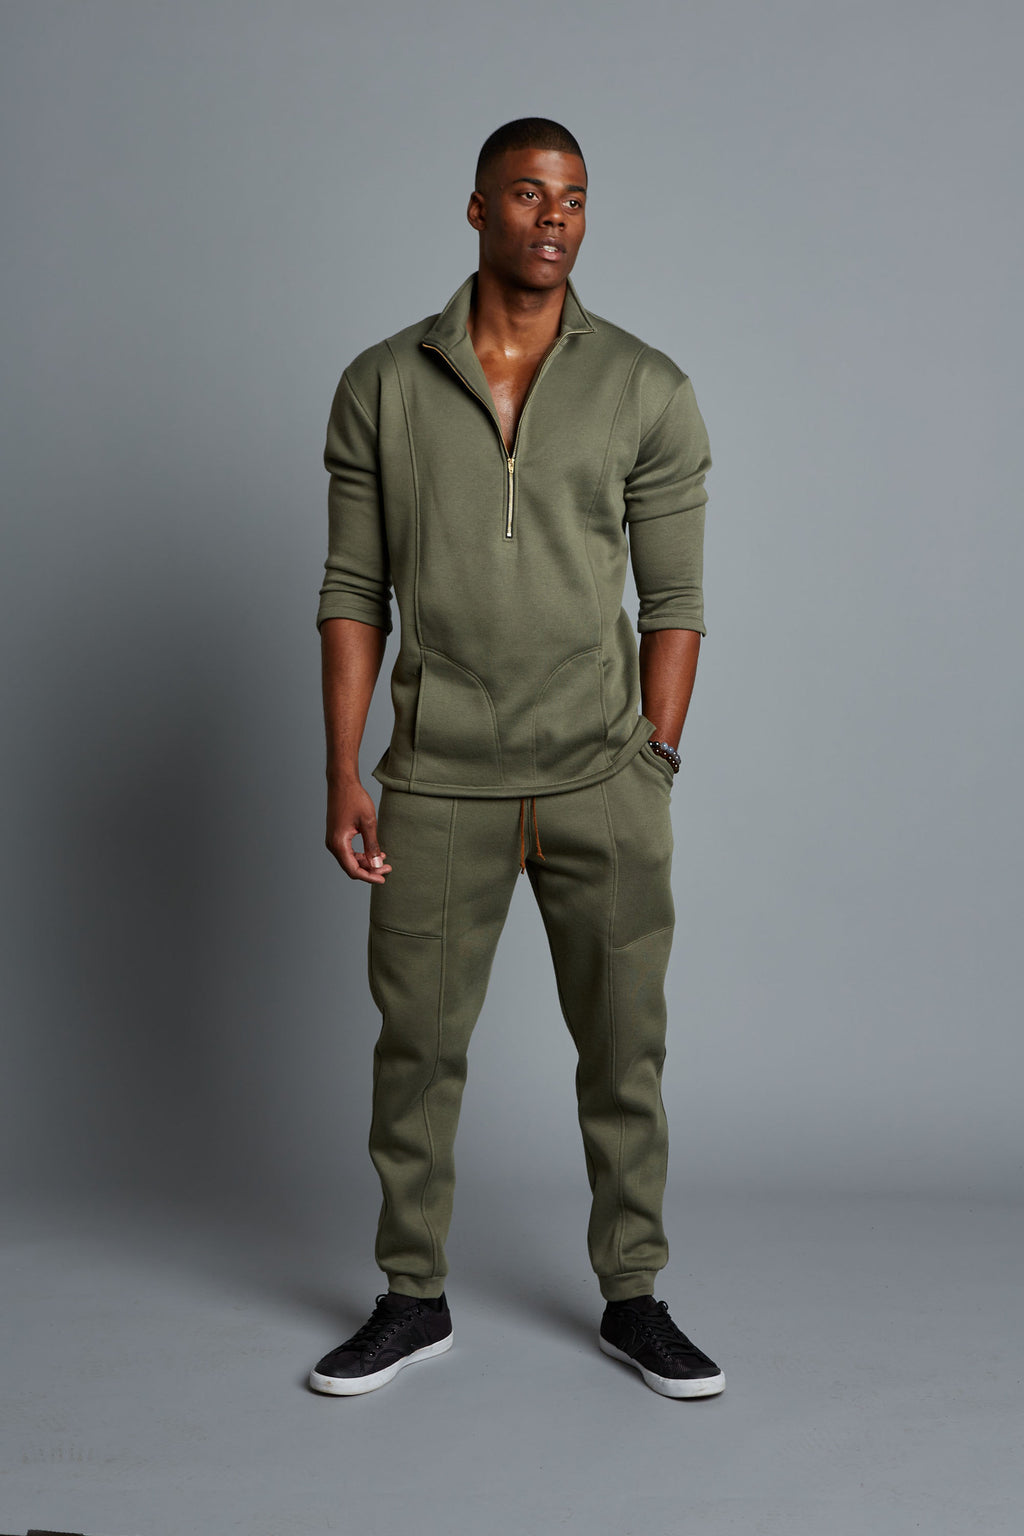 ADRIAN - Olive Men's Casual Jogger (Pre-Order)